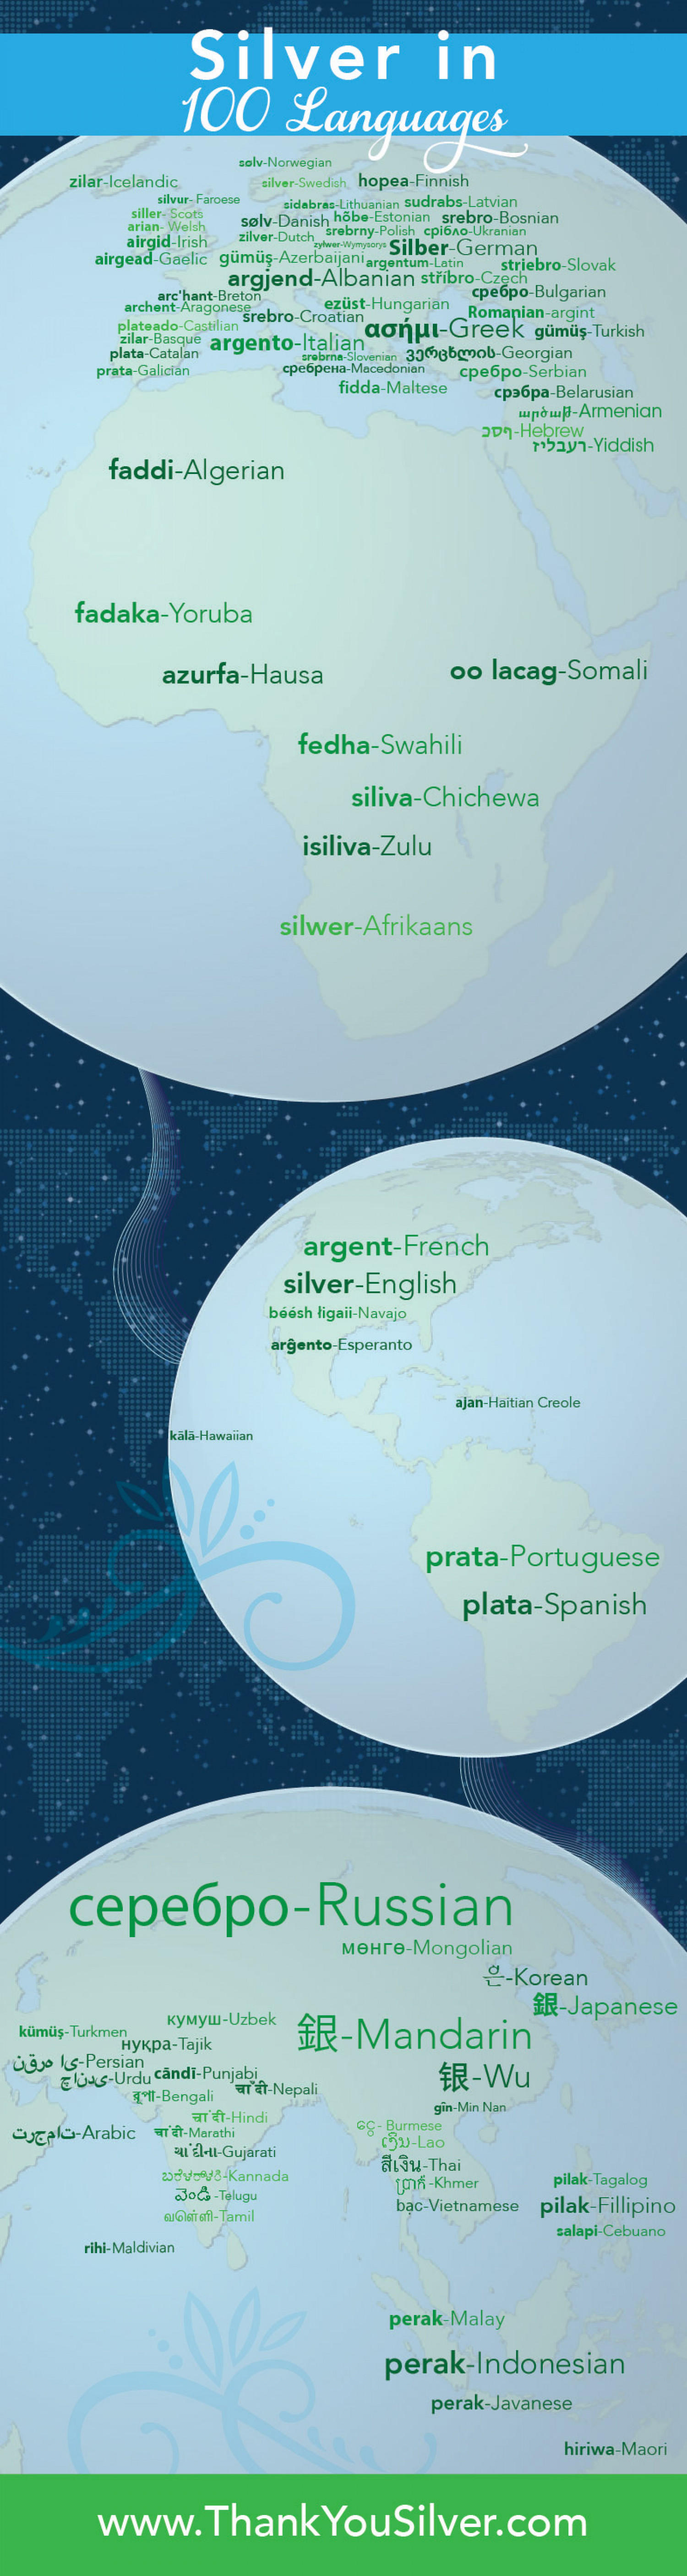 Silver in 100 Languages Infographic